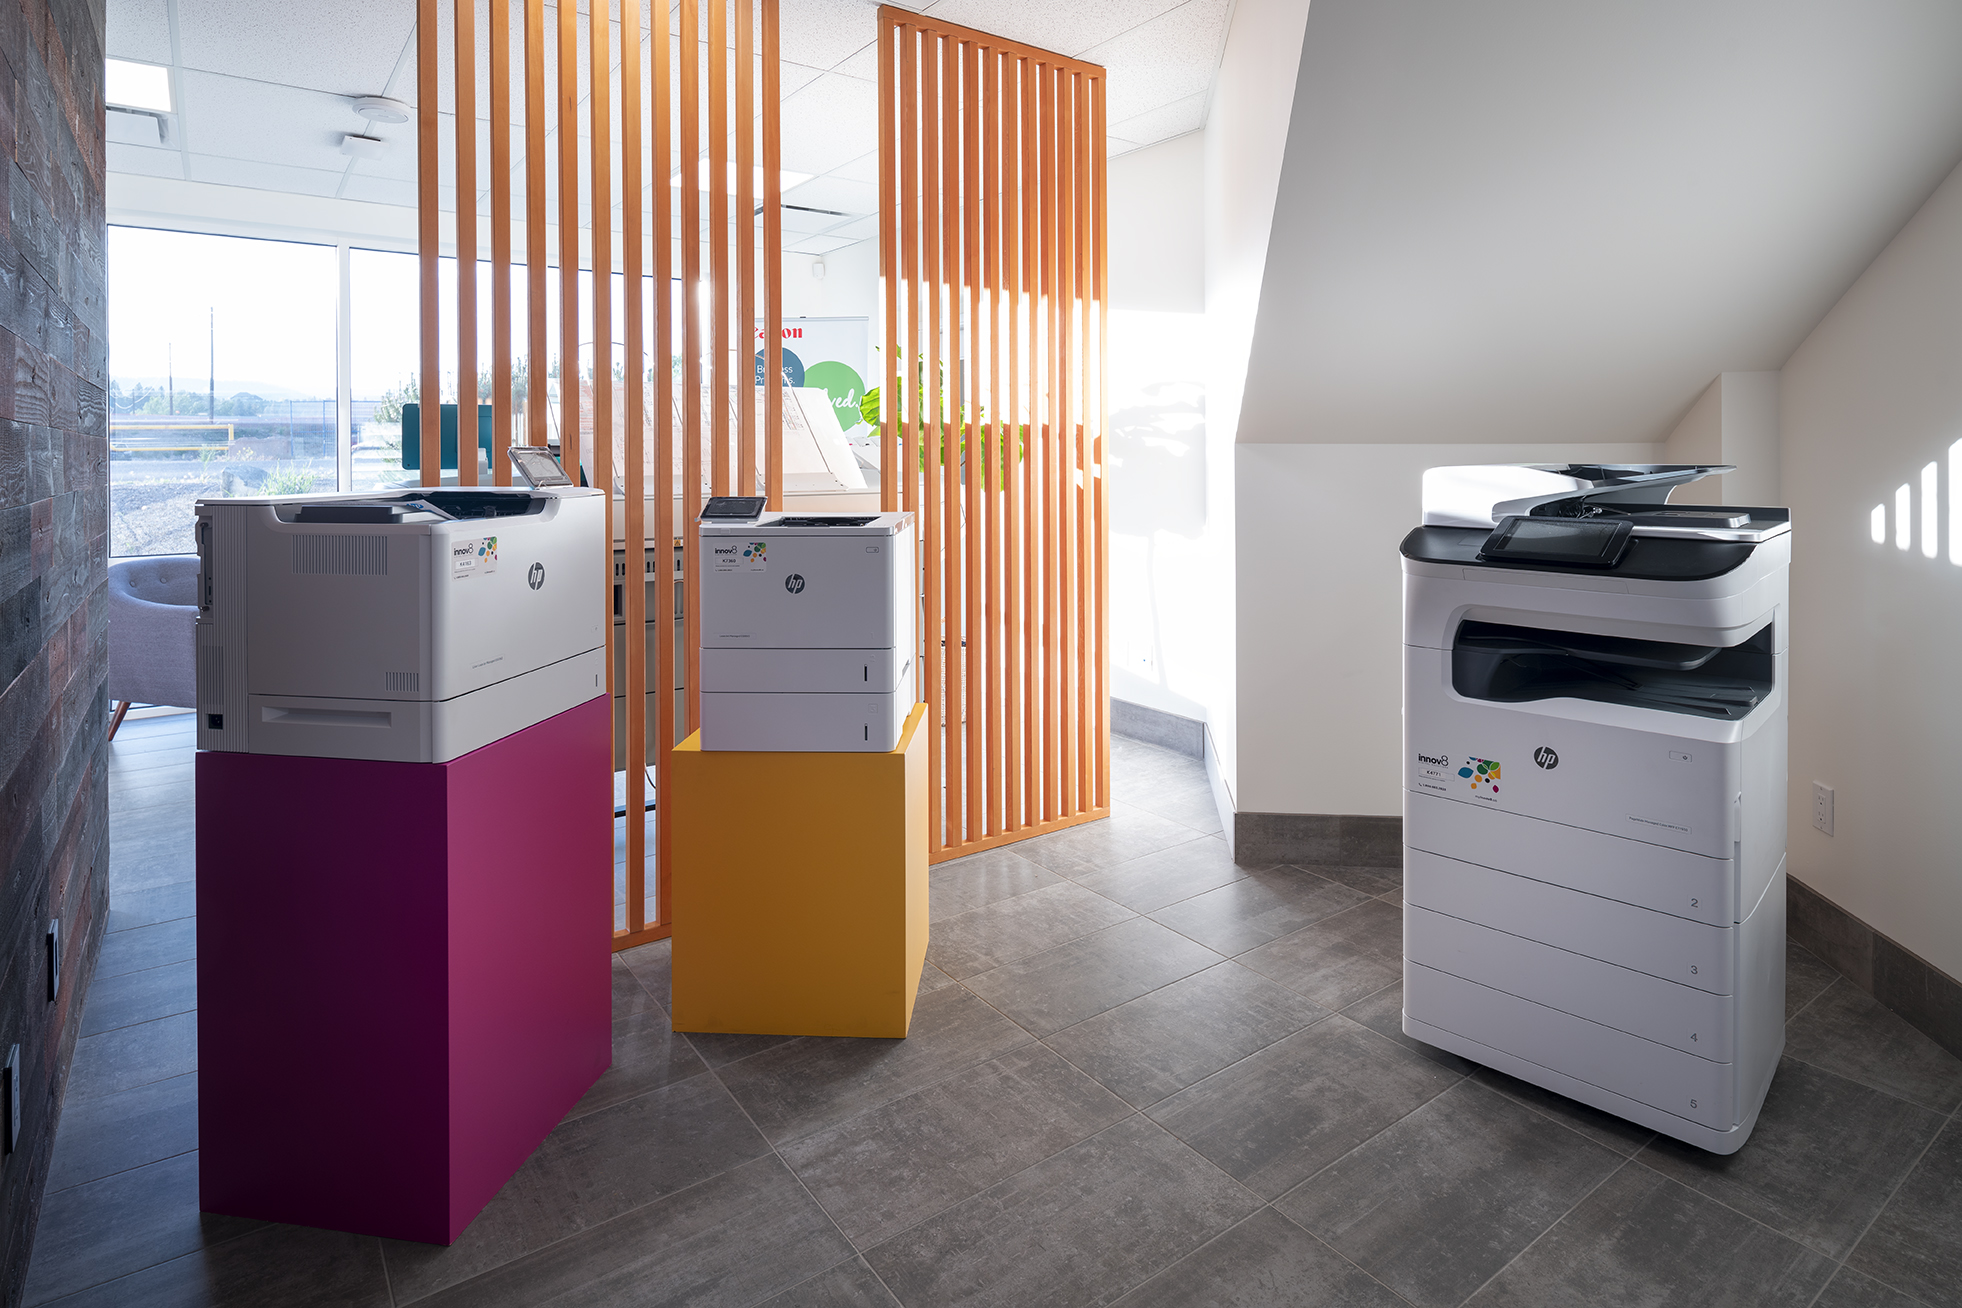 The Top 5 Hp Laserjet Printers For Small Businesses In 2019